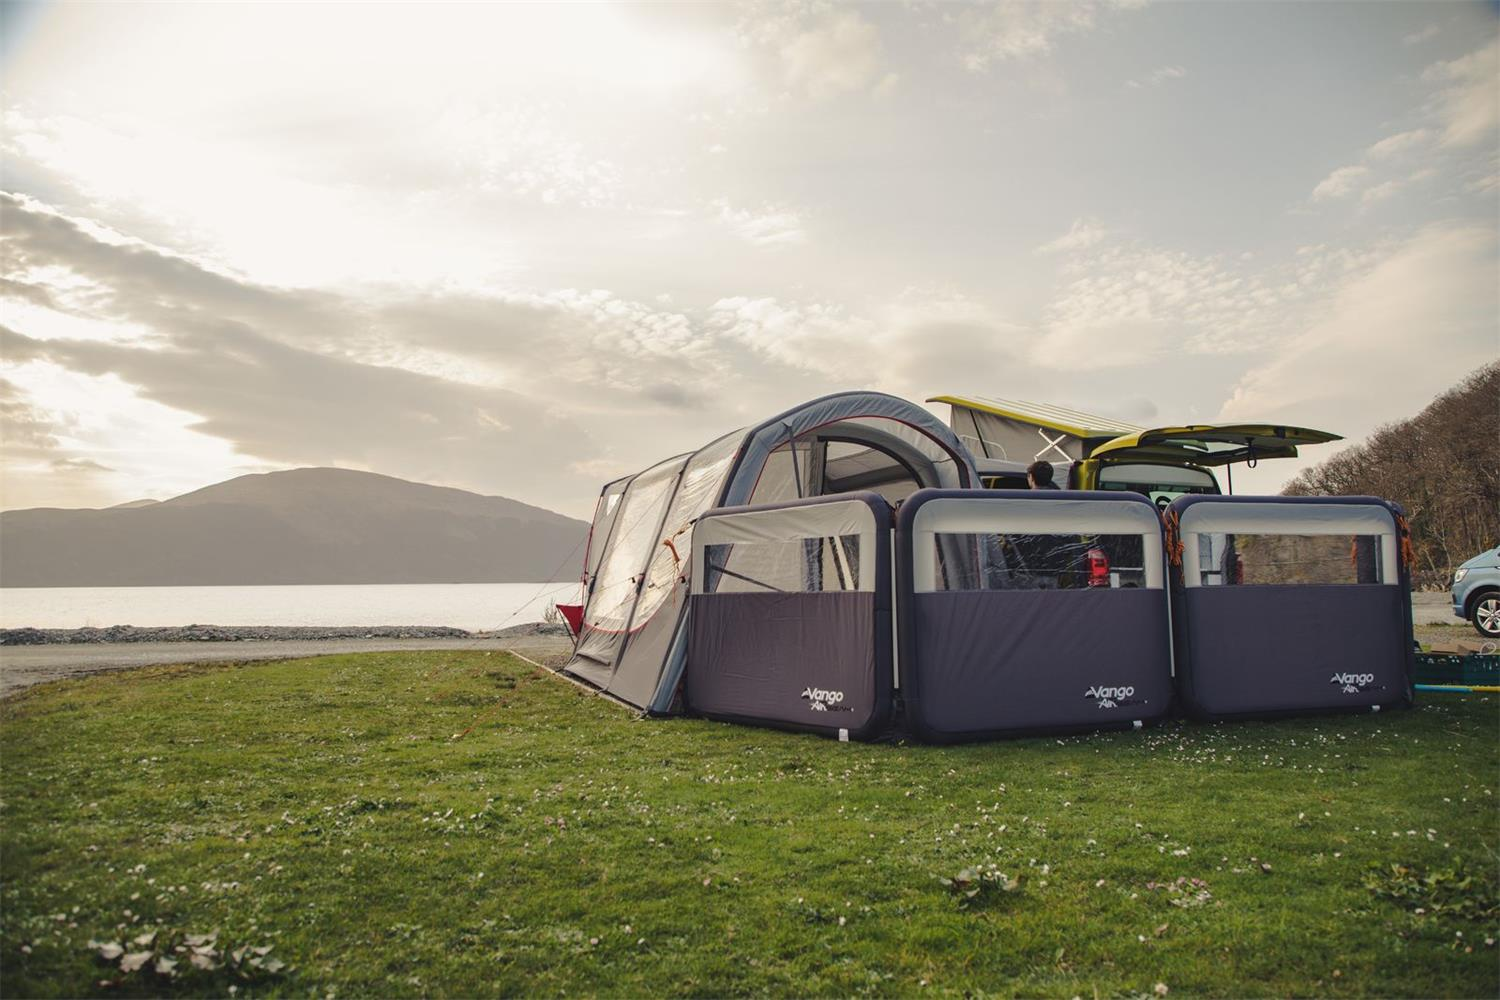 Watch the hours go by in style in the Vango Magra Sport VW driveaway awning.